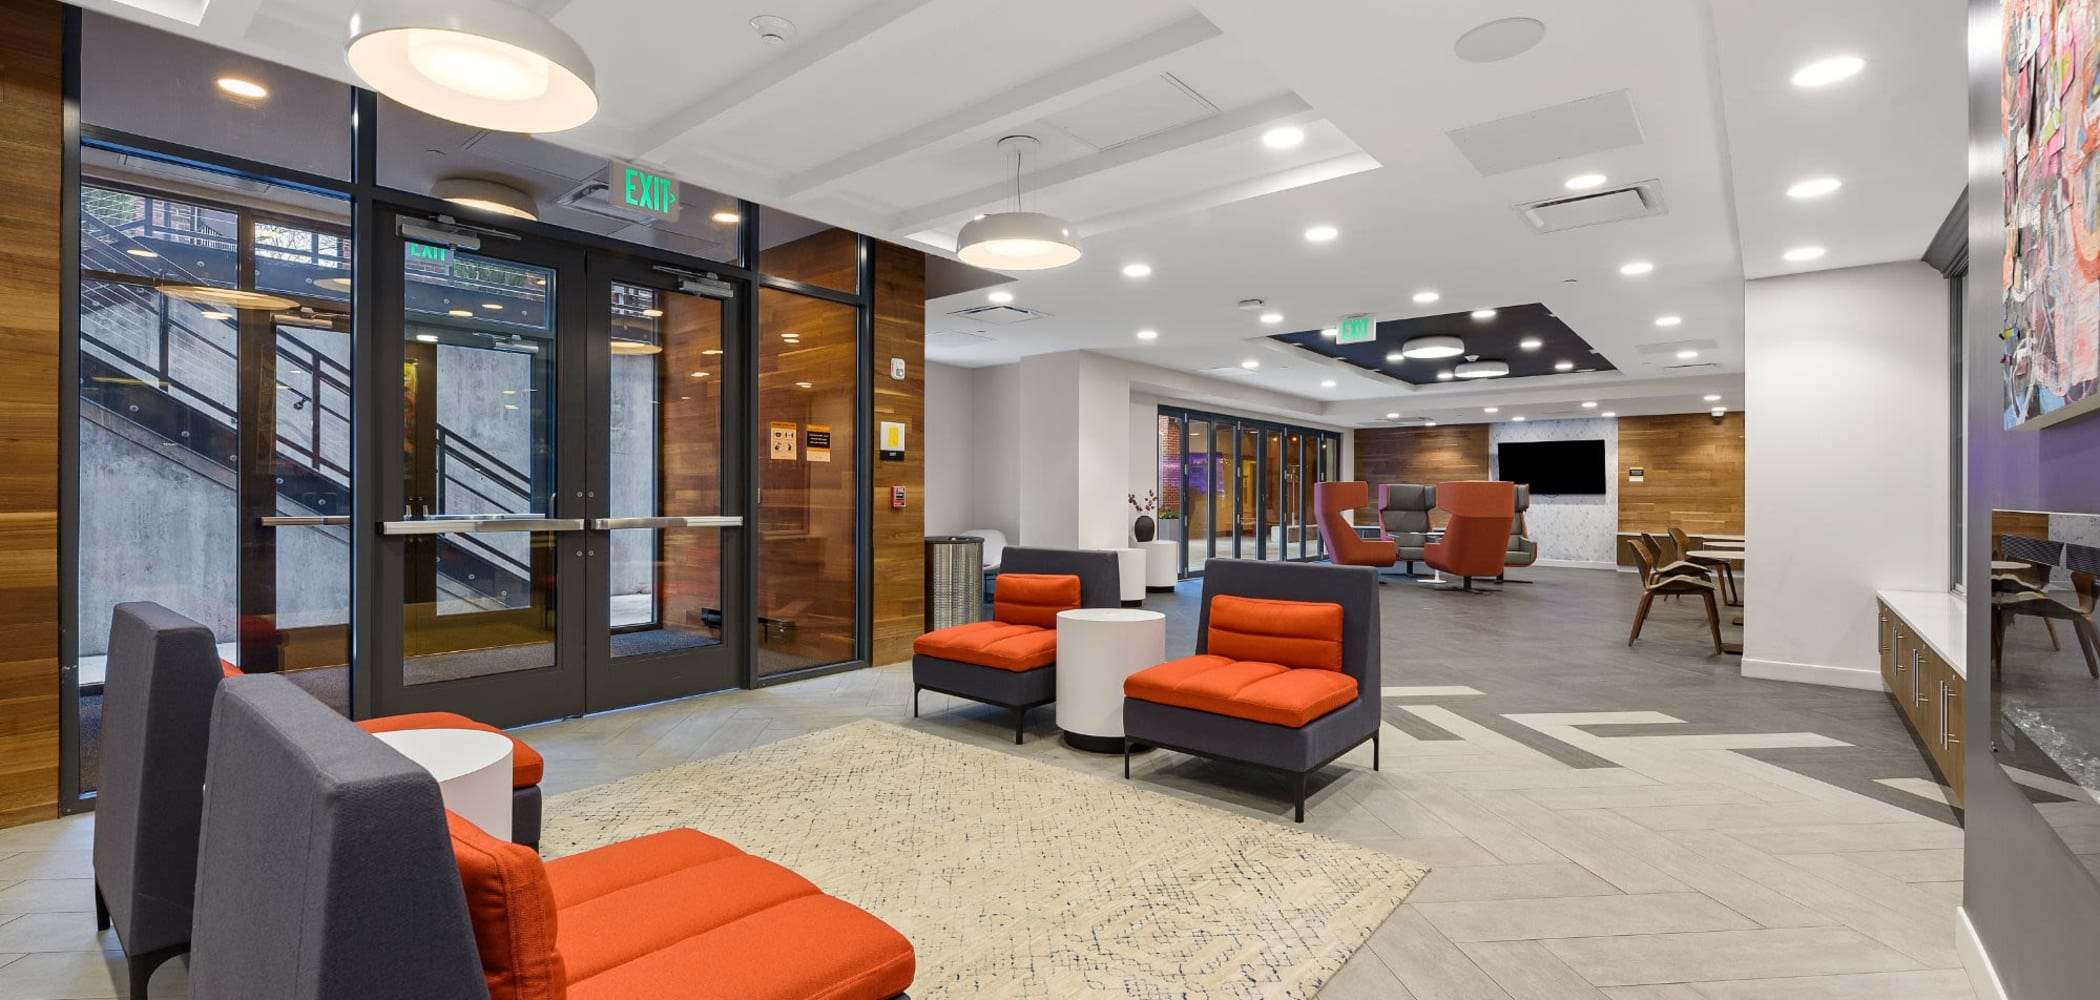 Lobby area where you can study or relax at The View on Pavey Square in Columbus, Ohio